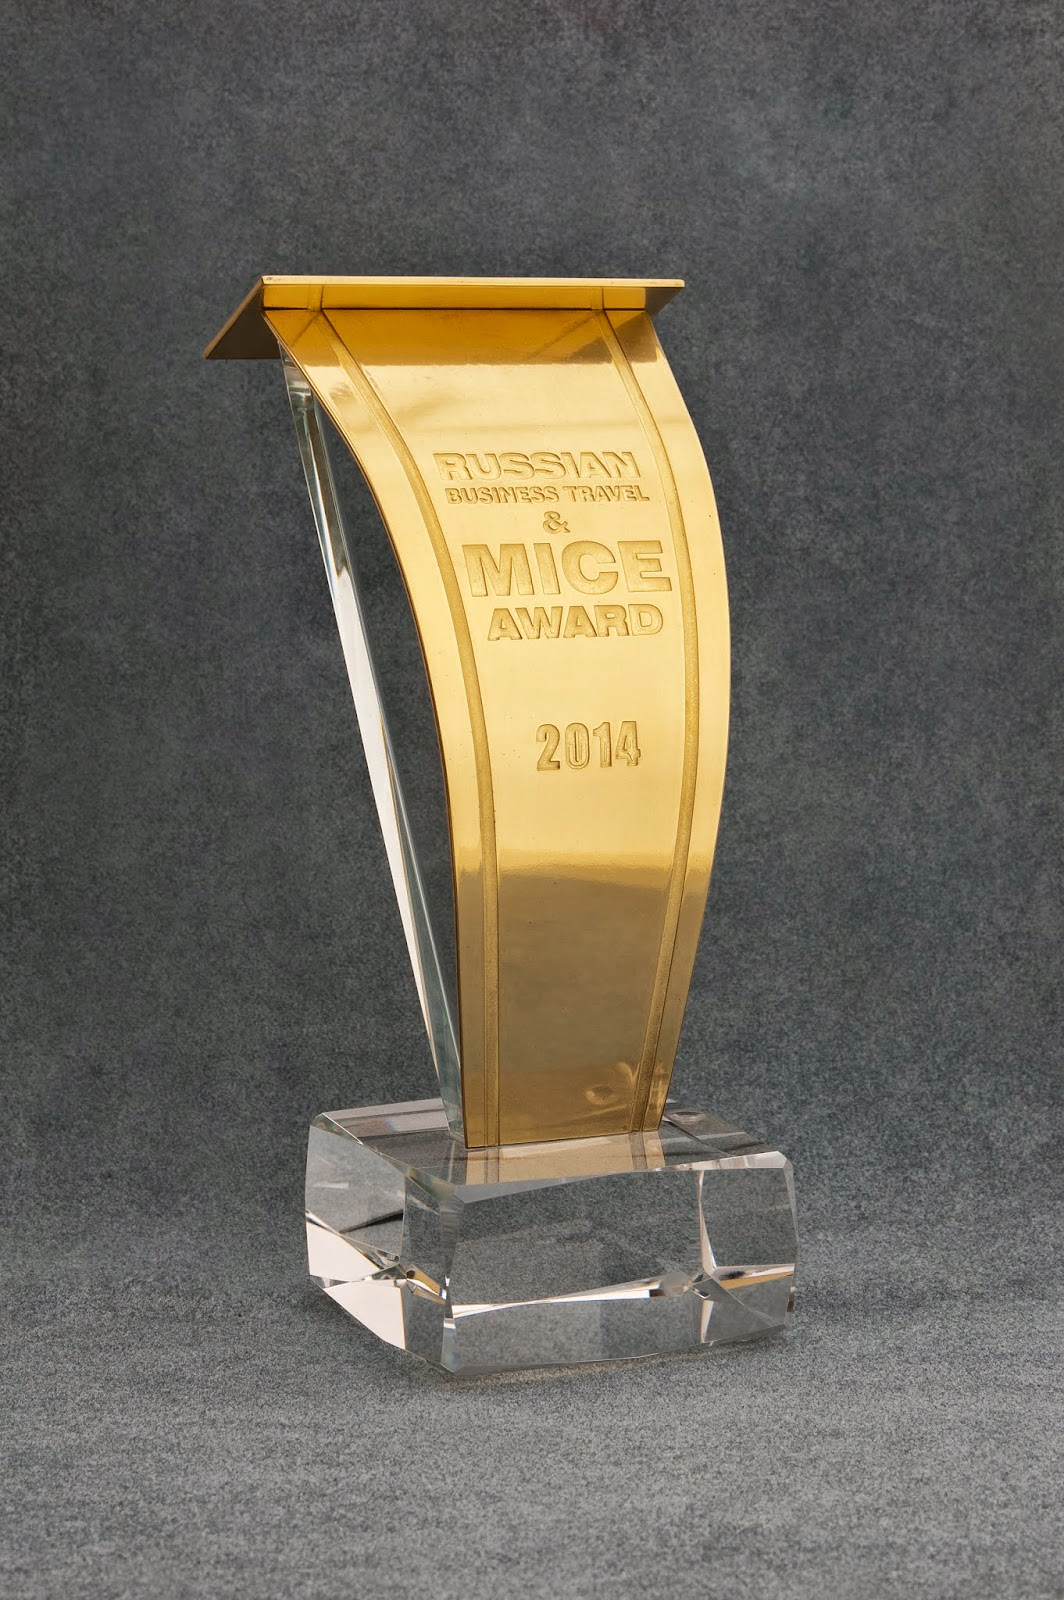 Премия Russian Business Travel & MICE Award 2014